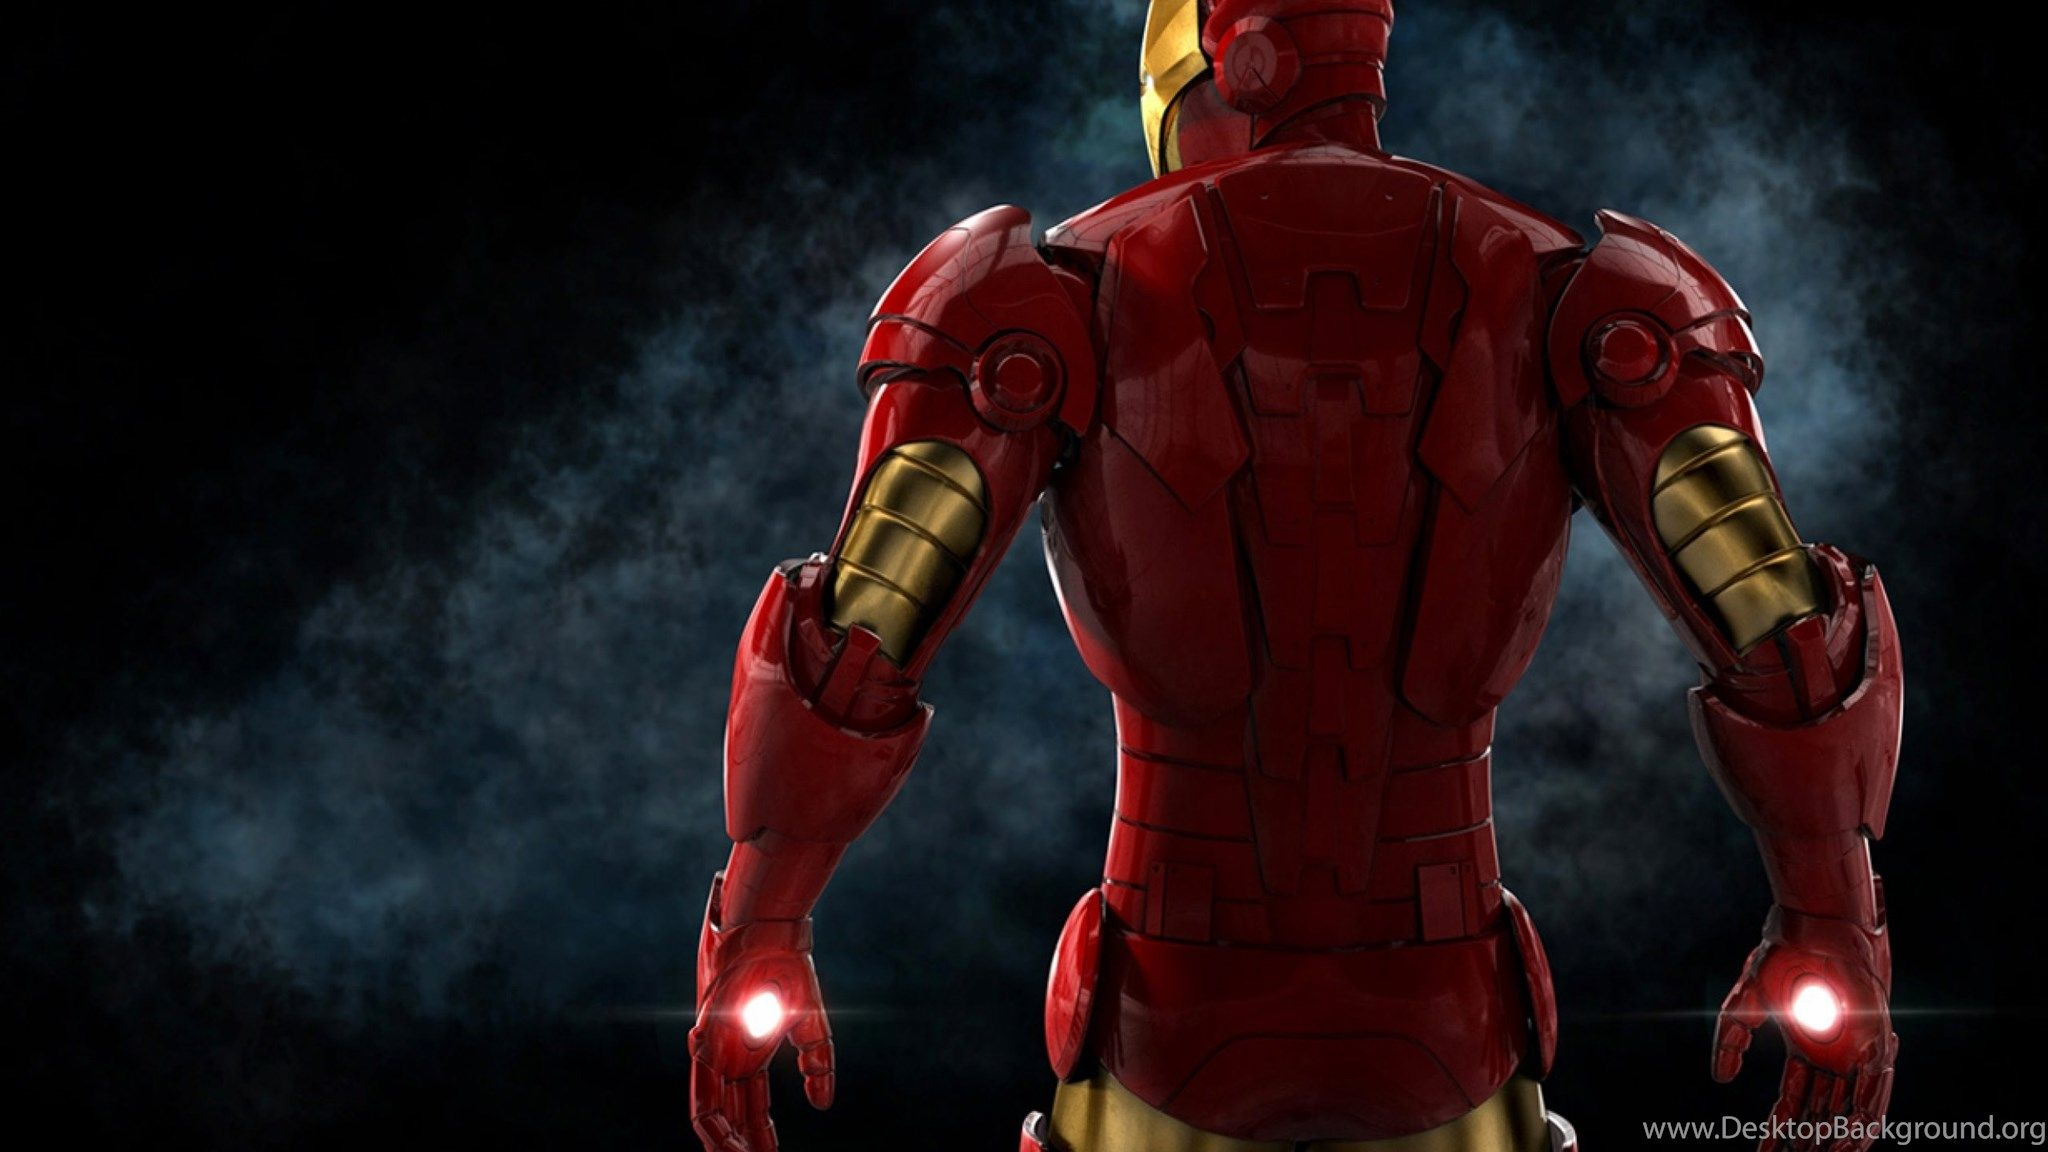 Iron Man Dual Screen Wallpapers Top Free Iron Man Dual Screen